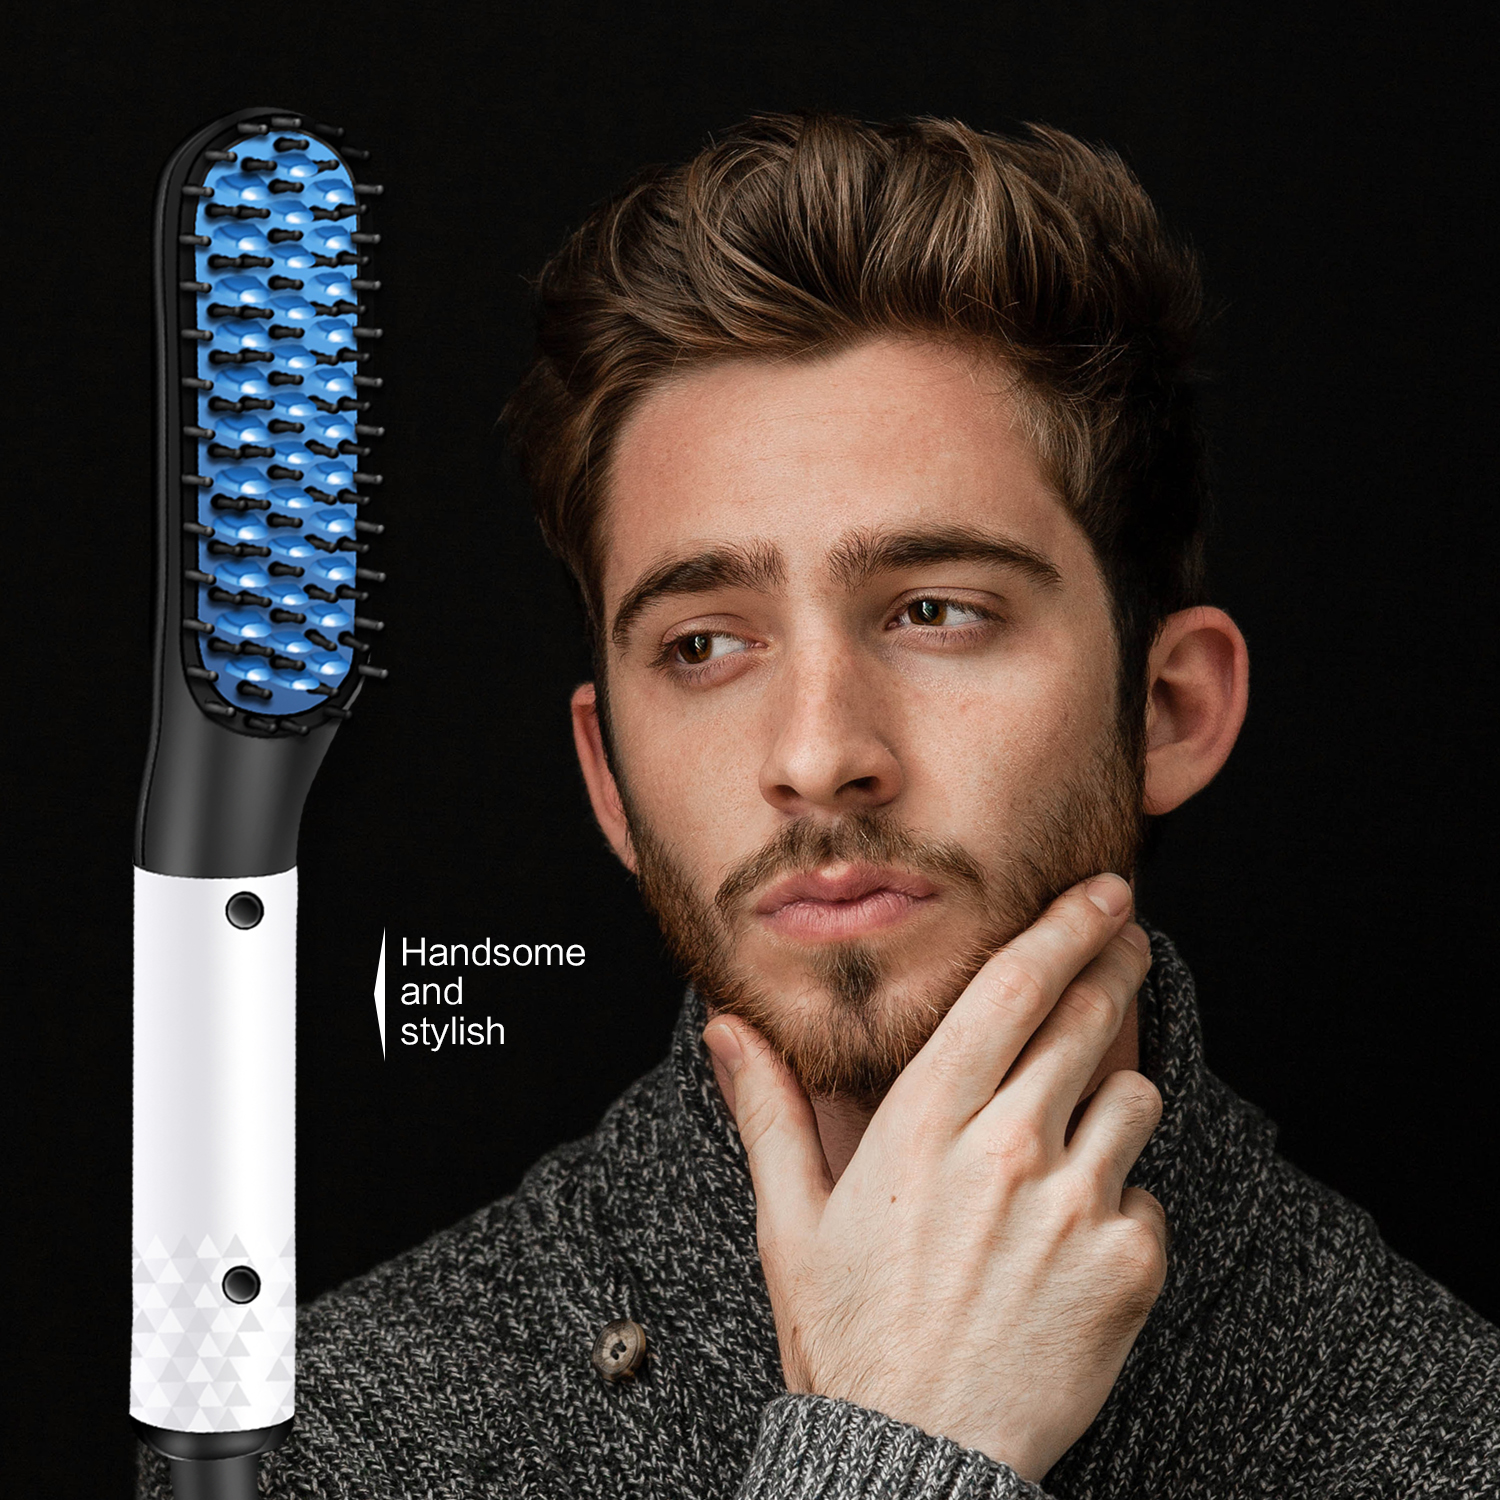 Professional Quick Hair Styler for Men Curling Iron Side Straighten Salon Hairdressing Quick Beard Straightener Styler CombProfessional Quick Hair Styler for Men Curling Iron Side Straighten Salon Hairdressing Quick Beard Straightener Styler Comb